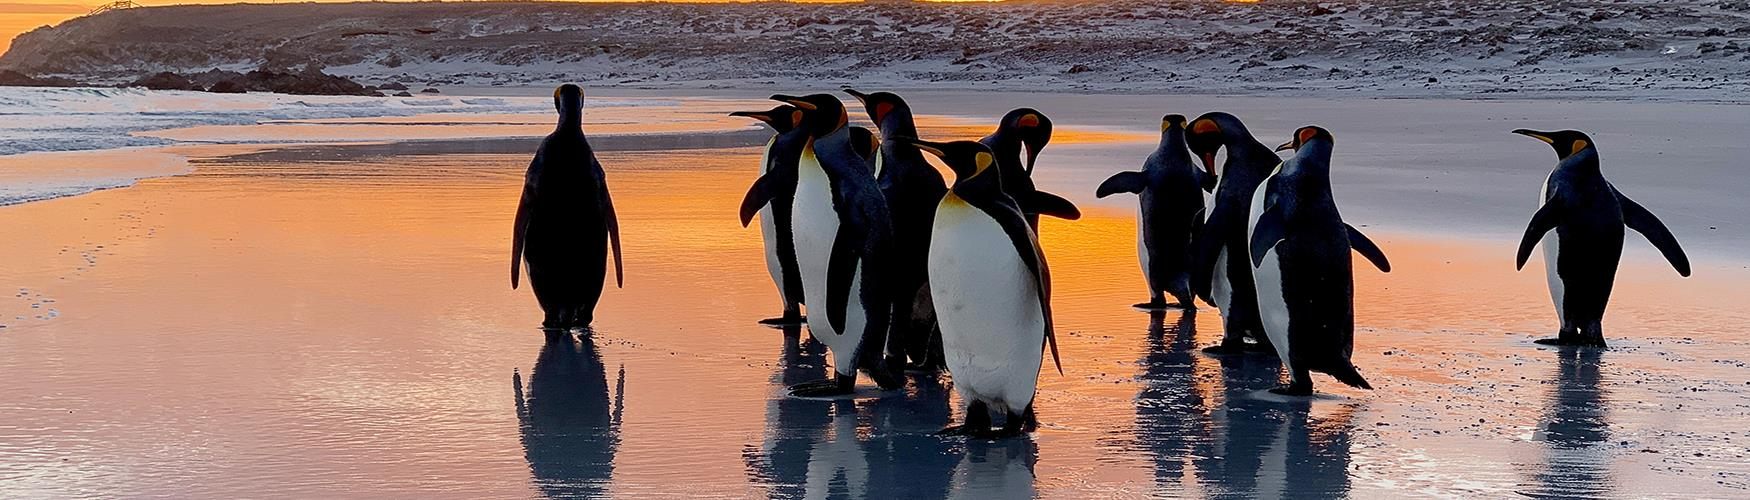 Sunrise at Volunteer Point with King Penguins, Falkland Islands